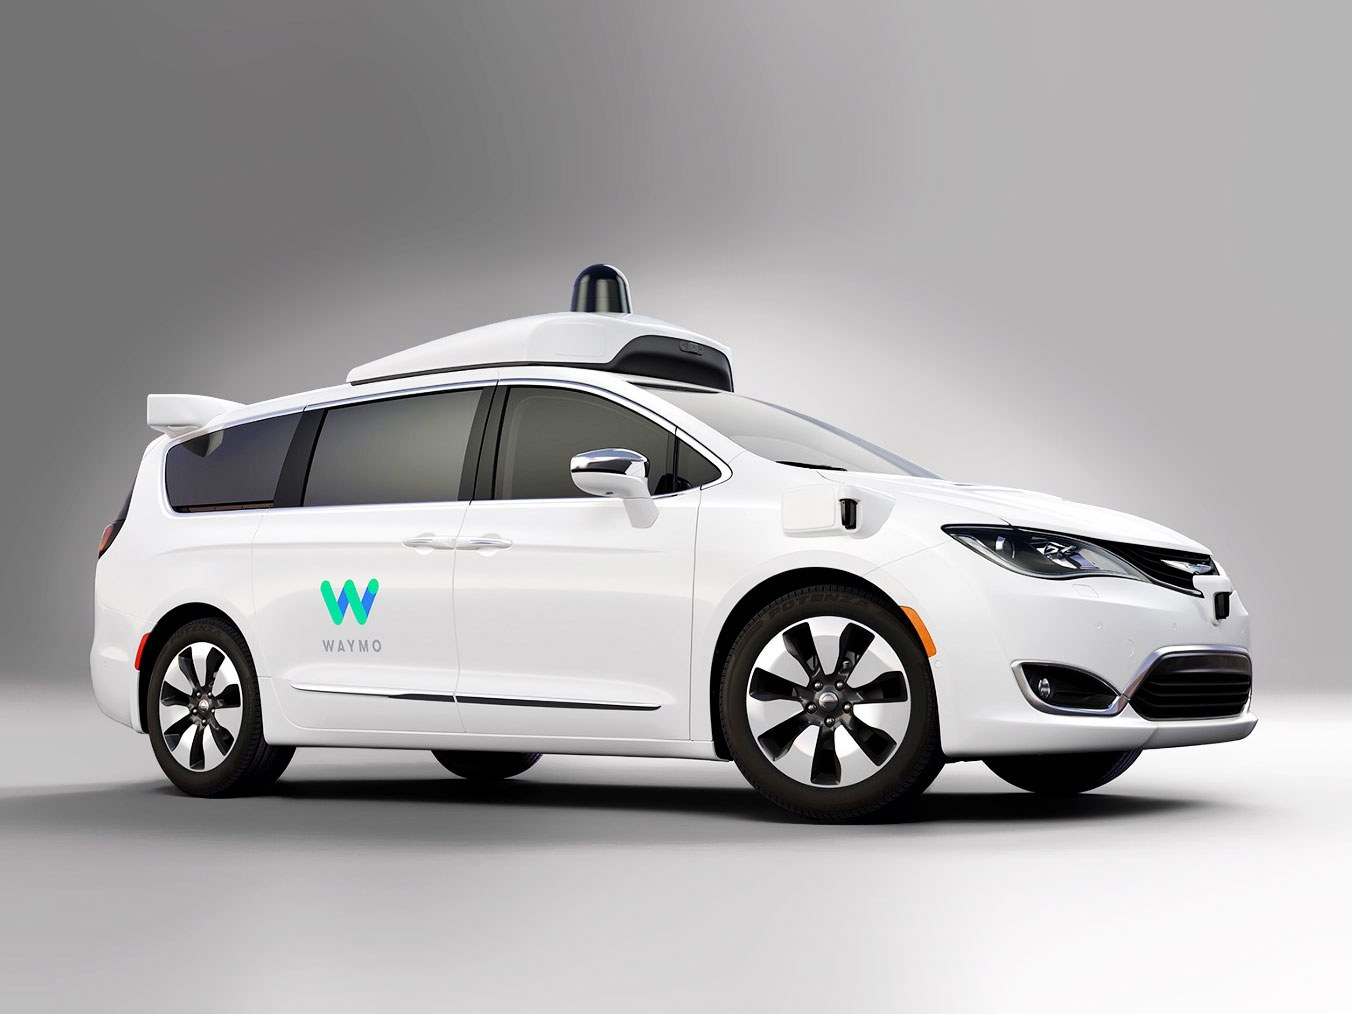 Photo of a white Waymo taxi